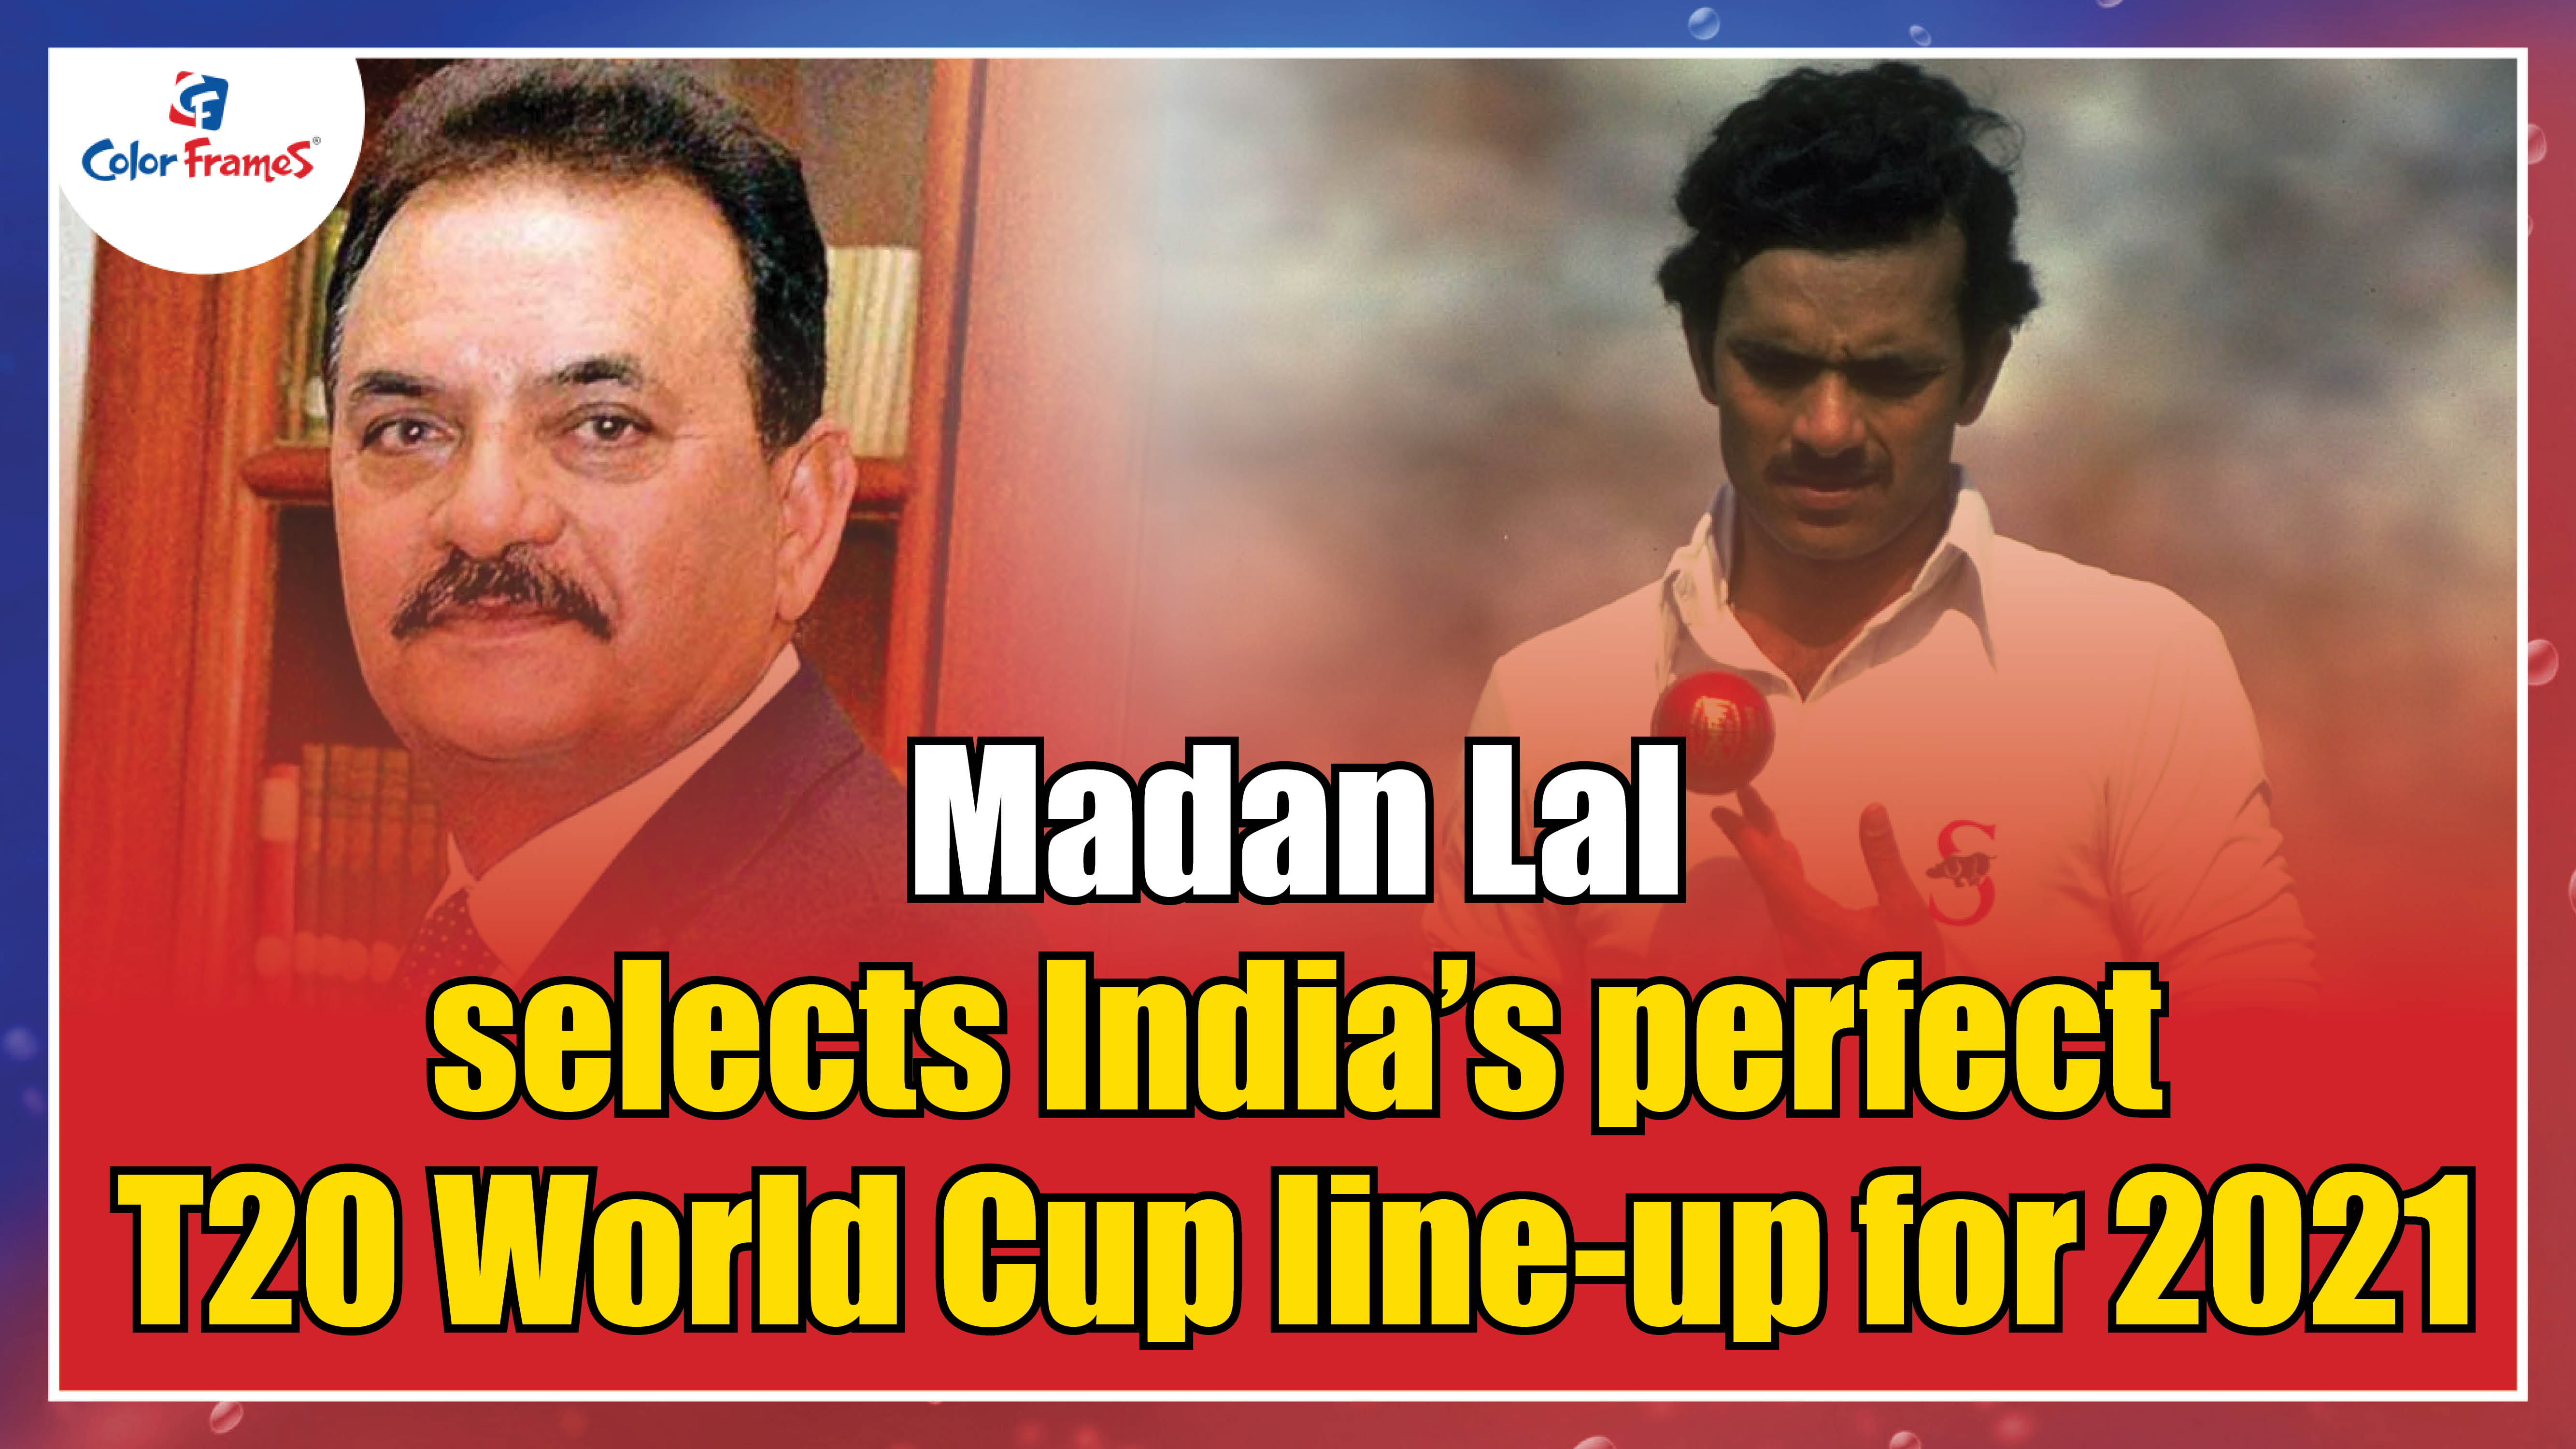 Madan Lal selects India's perfect T20 World Cup line-up for 2021.